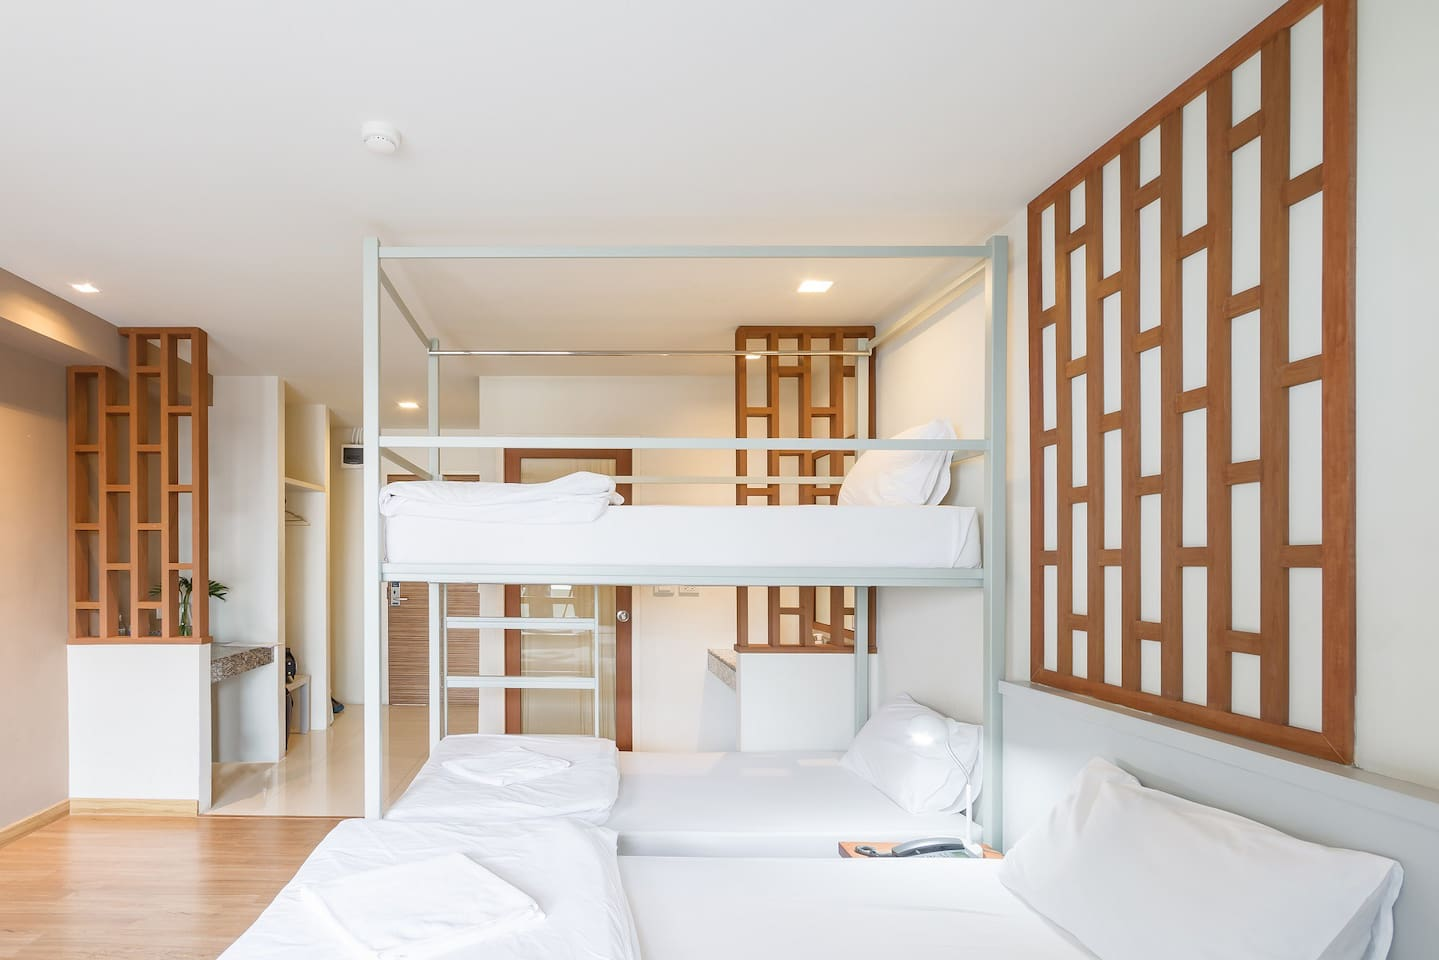 Family Room For People Private Bathroom Hostels For Rent In - Rooms for rent with private bathroom